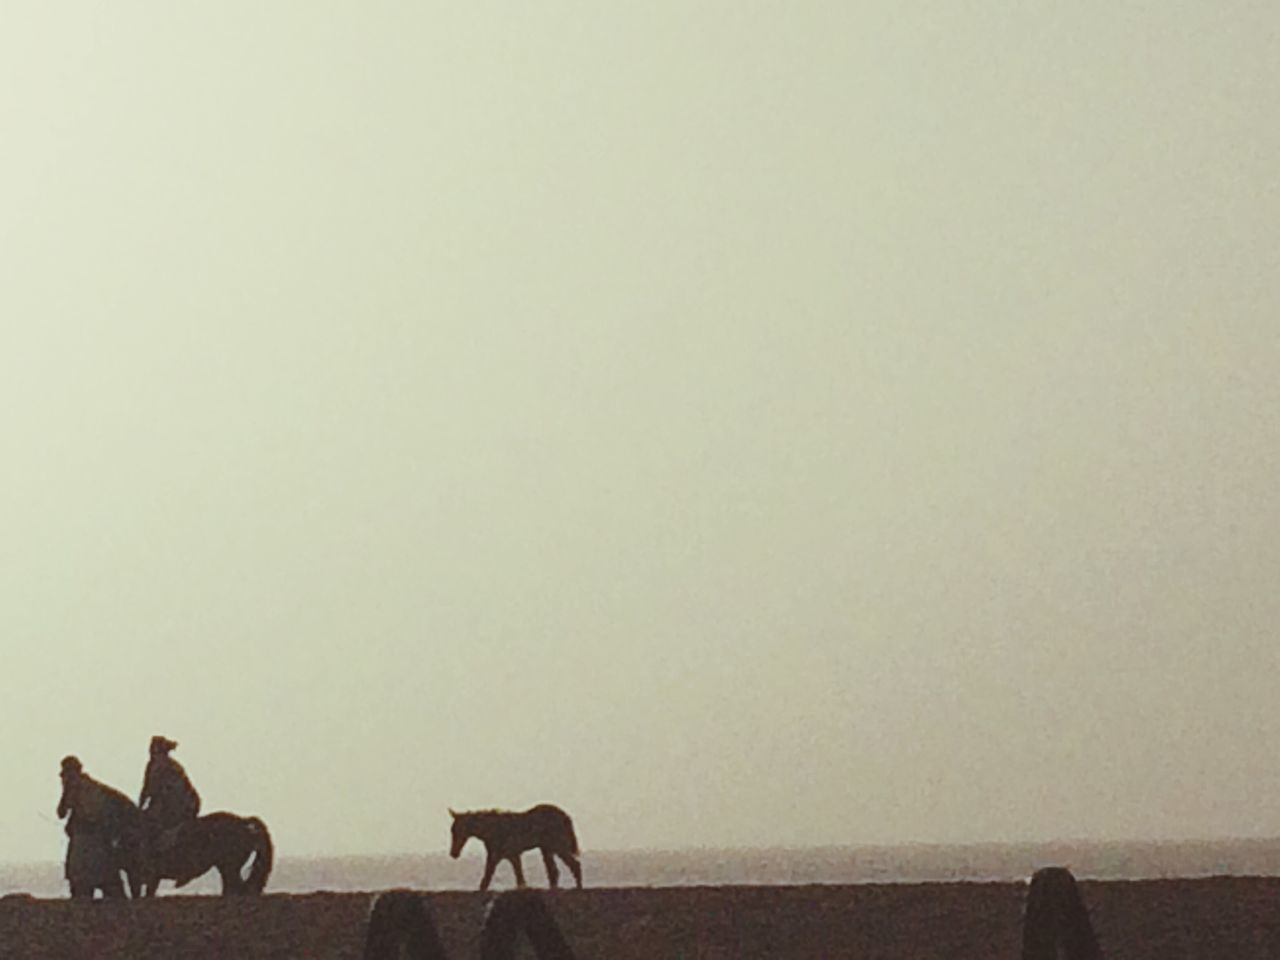 copy space, animal themes, mammal, nature, outdoors, one animal, standing, full length, day, domestic animals, sky, people